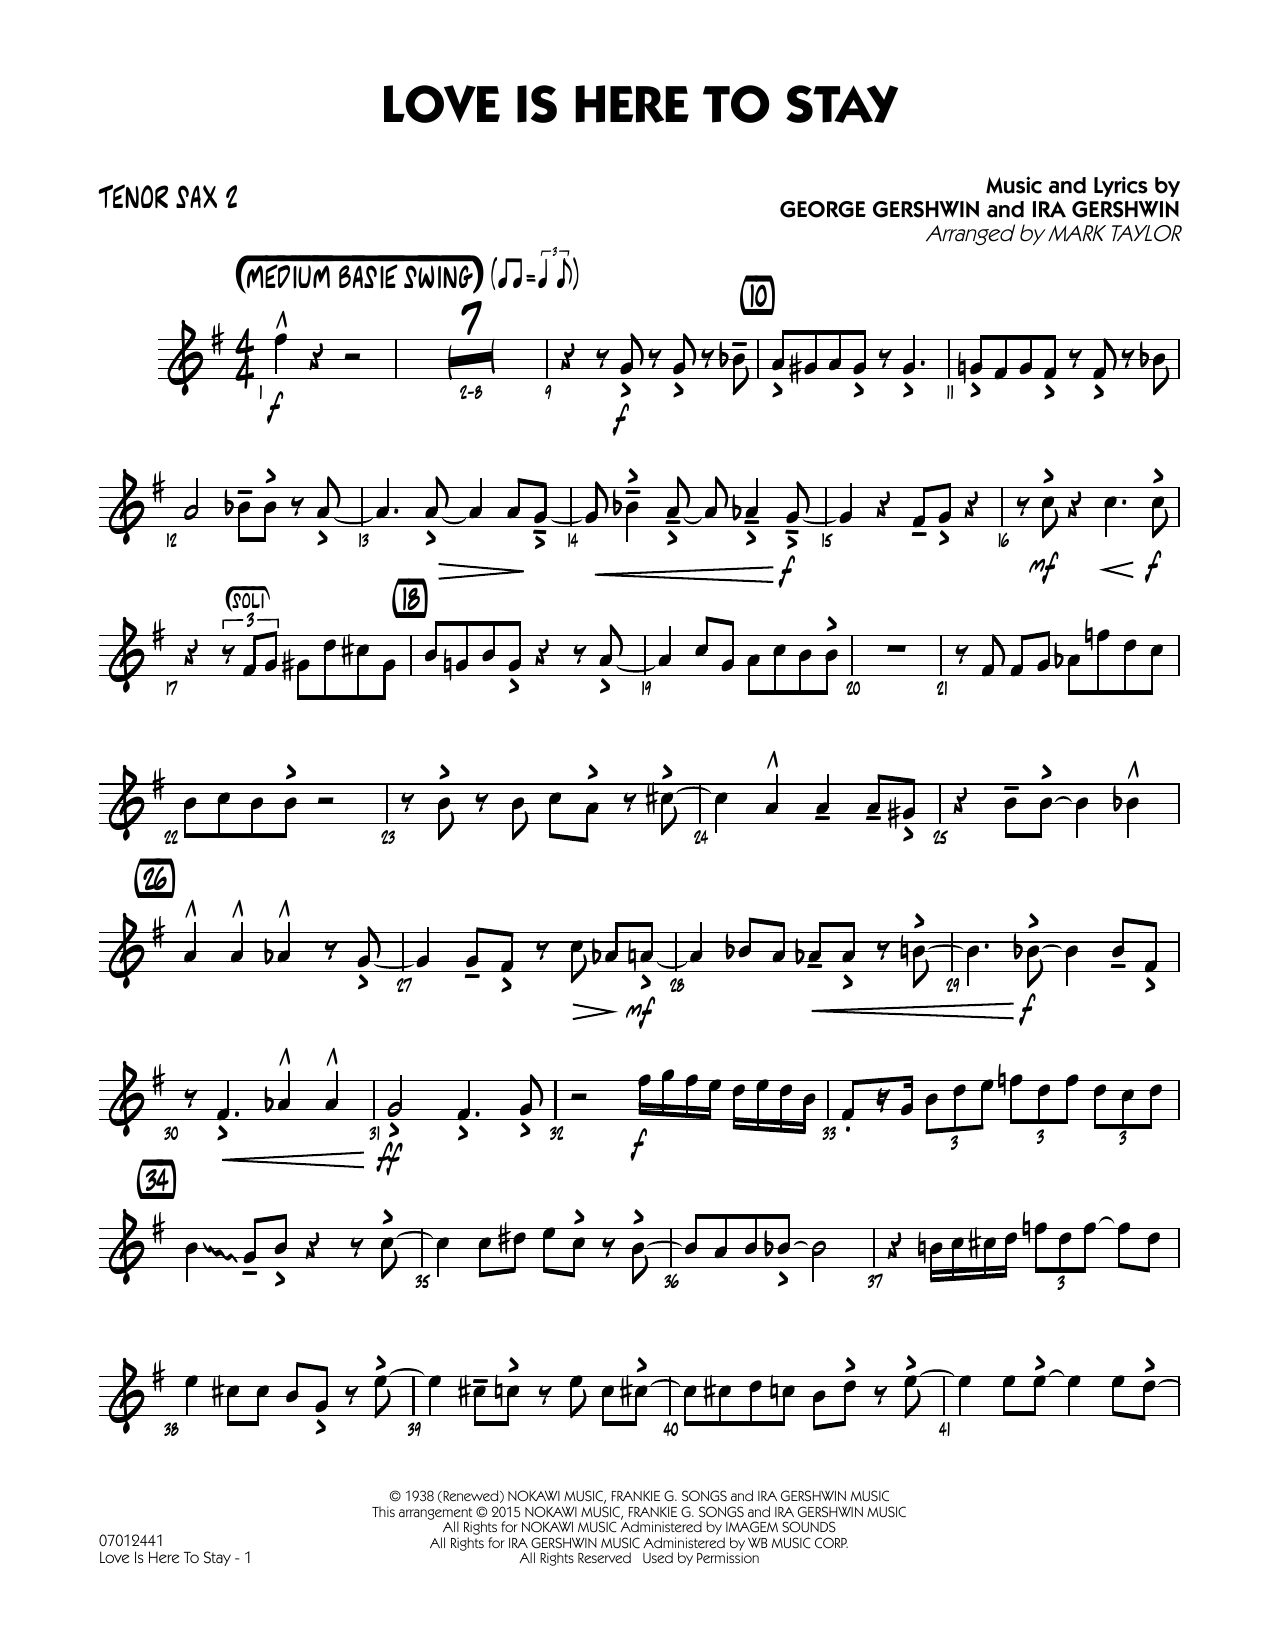 Love Is Here to Stay - Tenor Sax 2 (Jazz Ensemble)